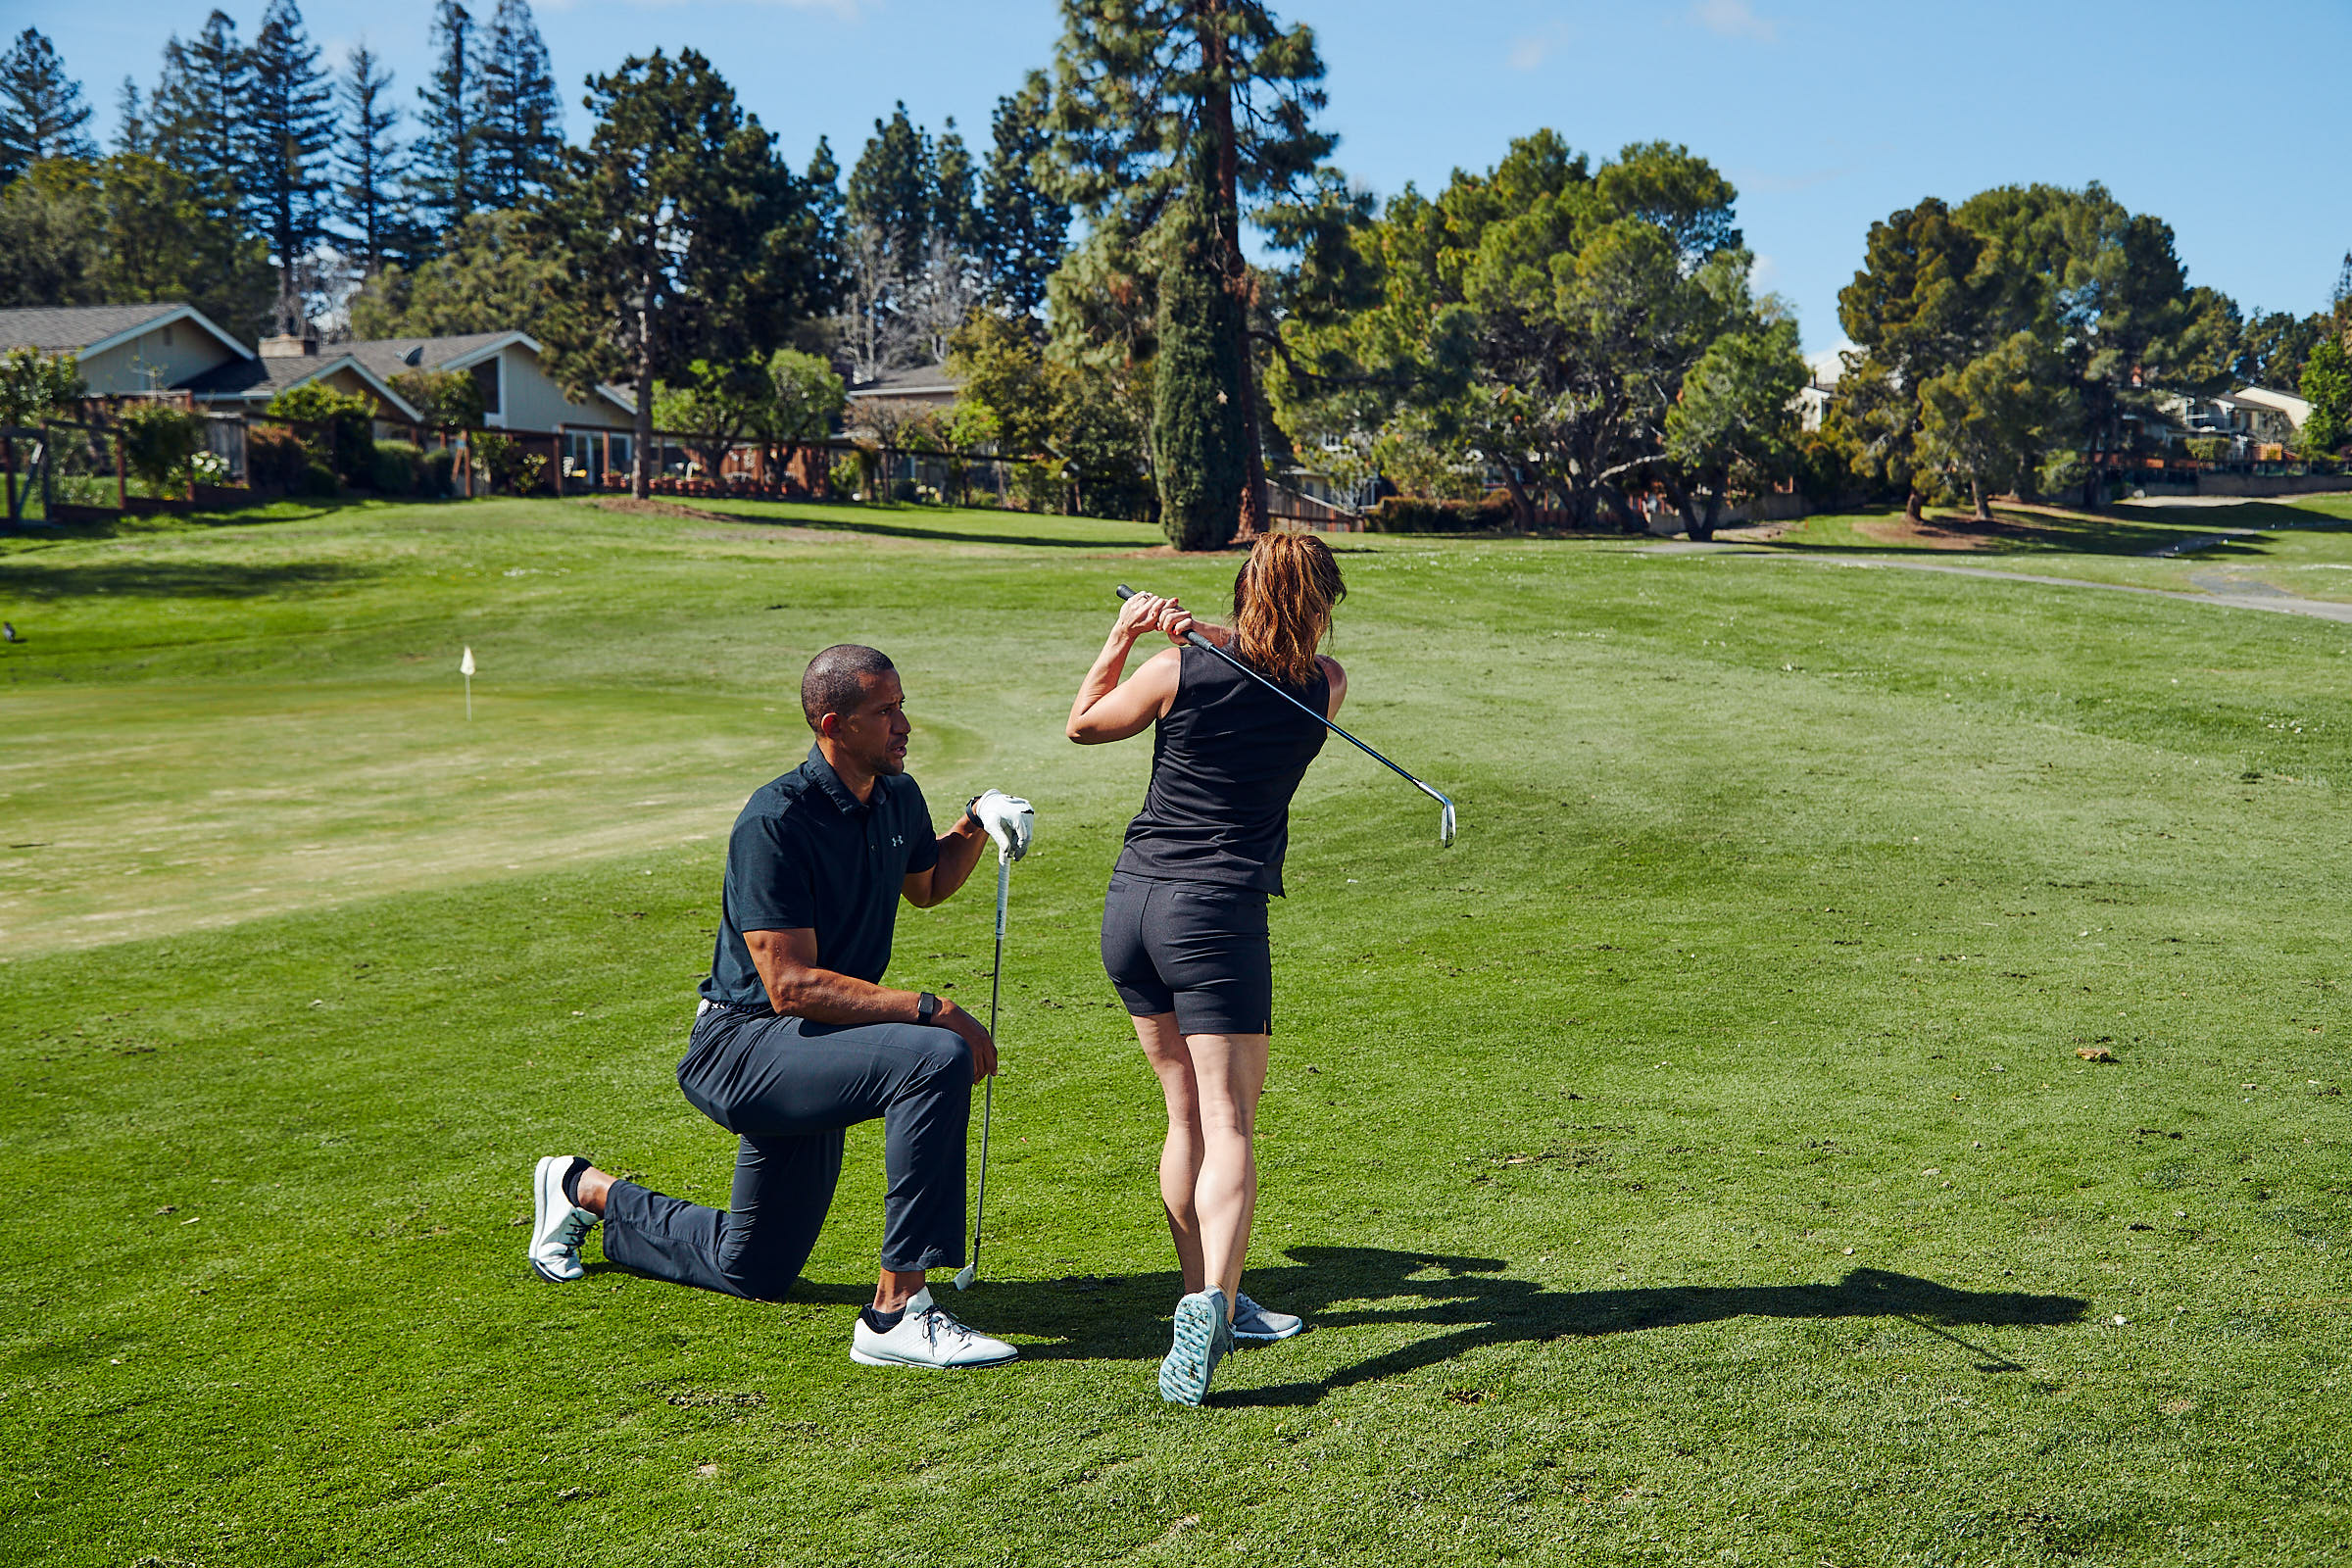 Trevor Anderson coaches female golfer on the golf course